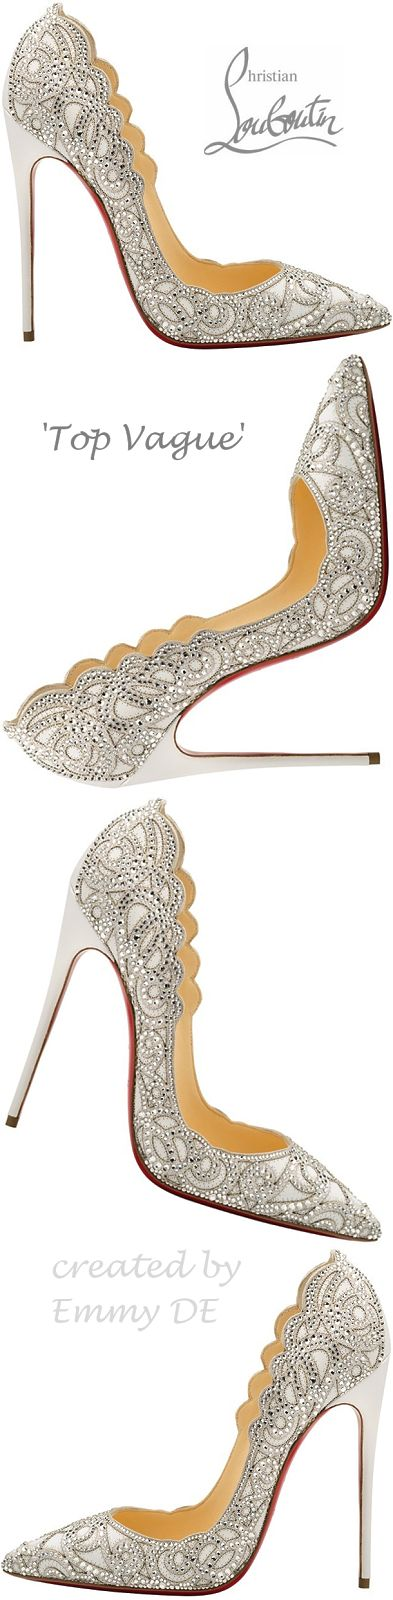 Brilliant Luxury by Emmy DE * Christian Louboutin 'Top Vague' Spring 2015